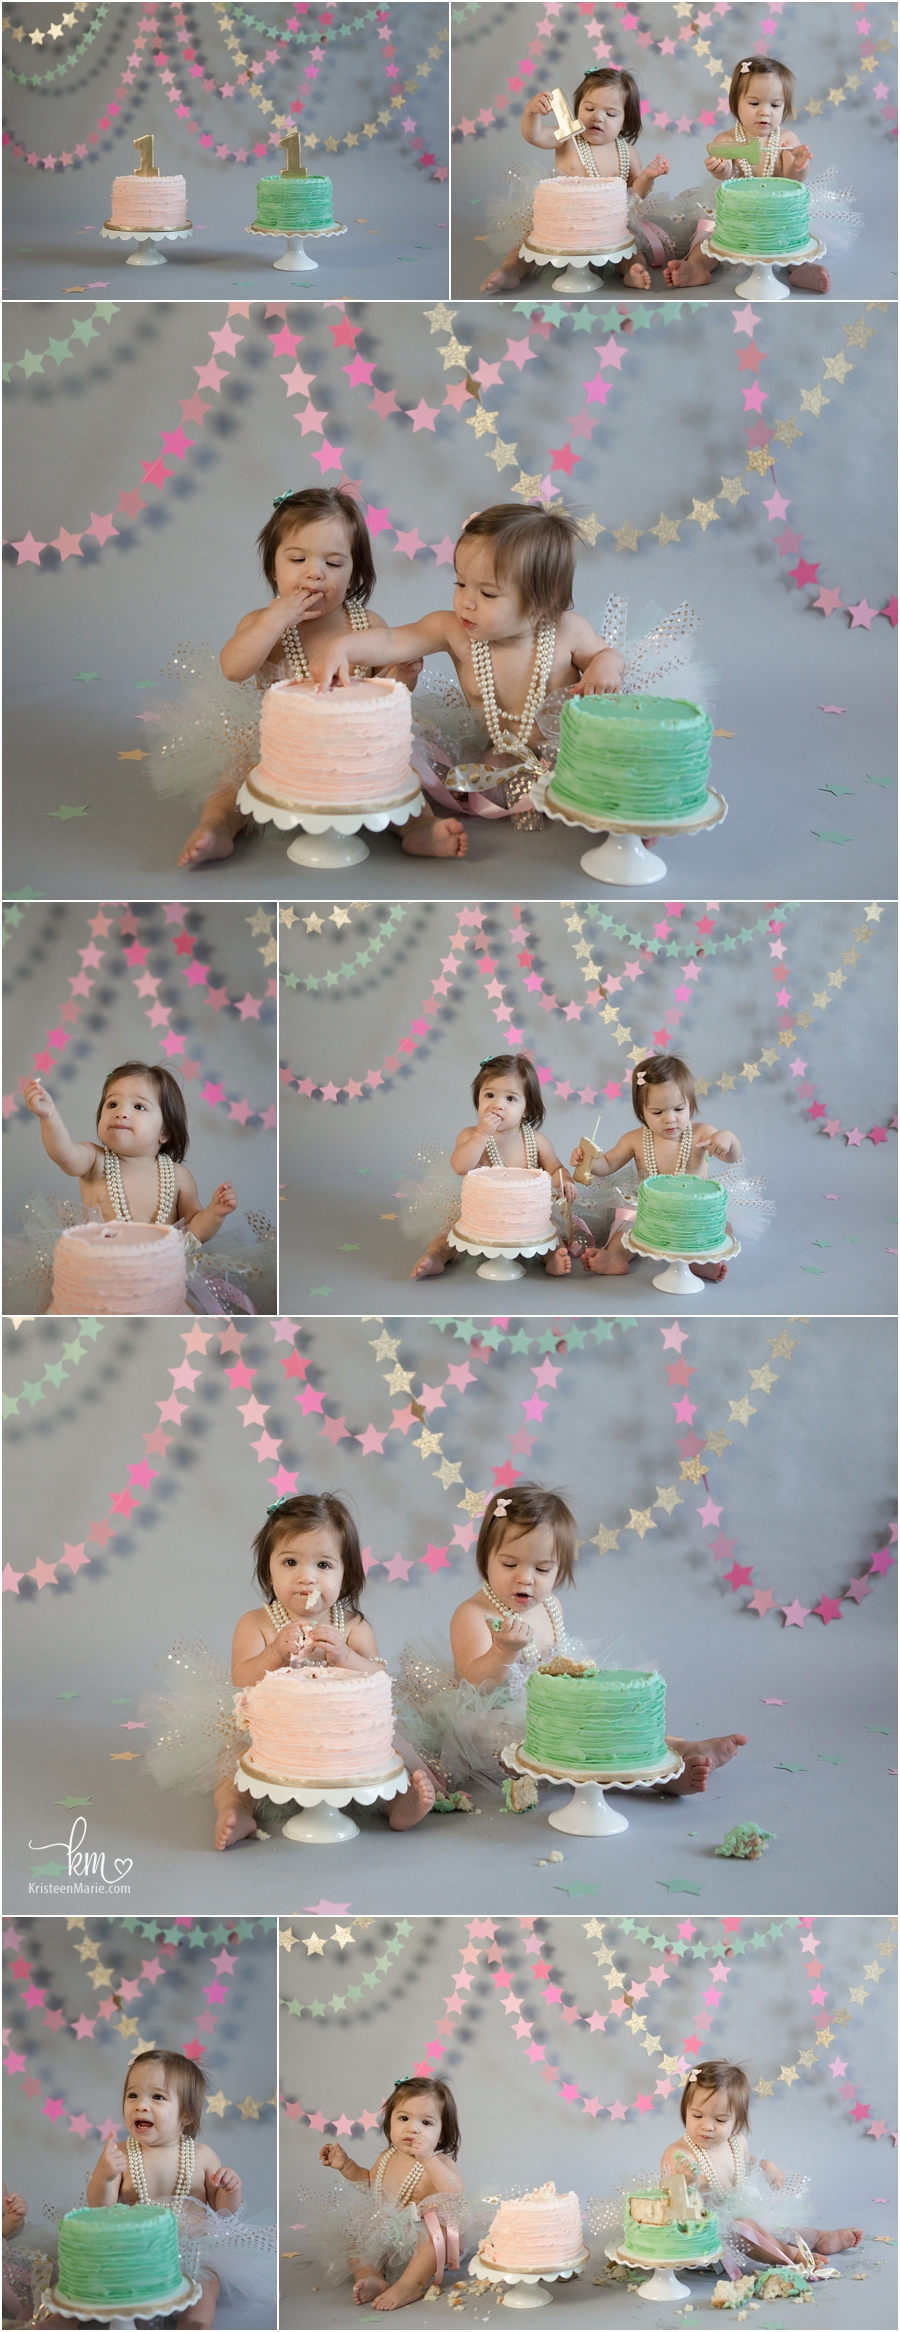 twin girls stars cake smash first birthday photos